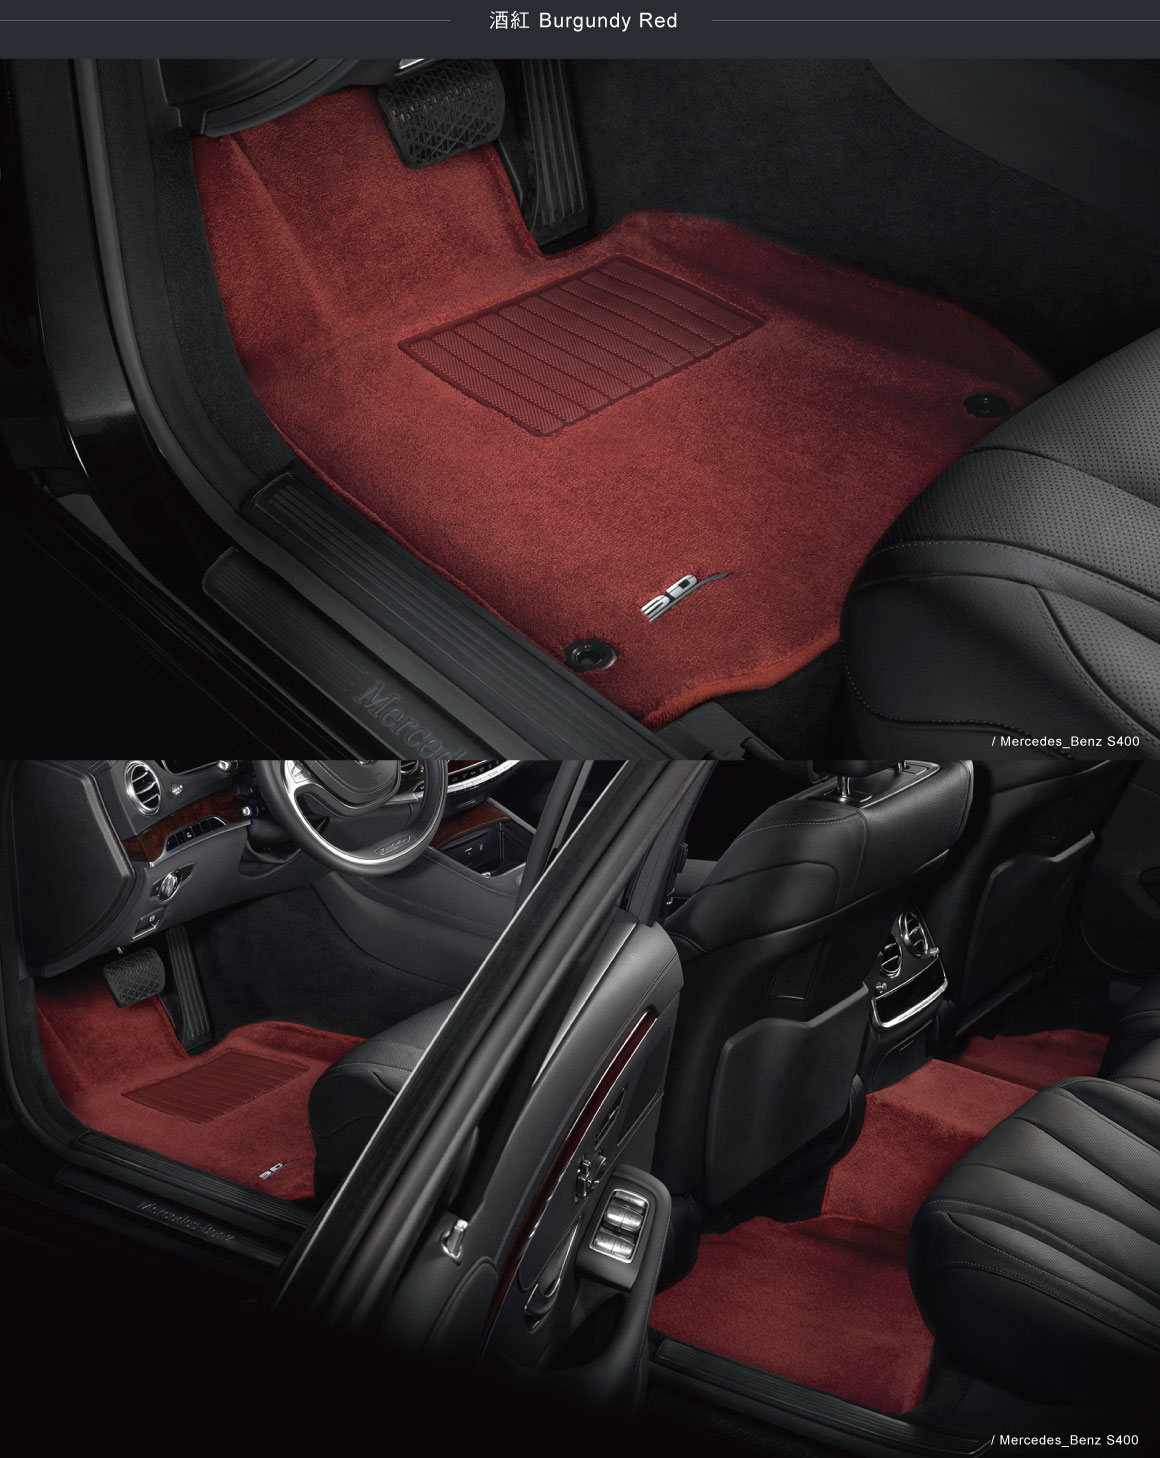 Honda New Jazz Award Winning Car Floor Mats